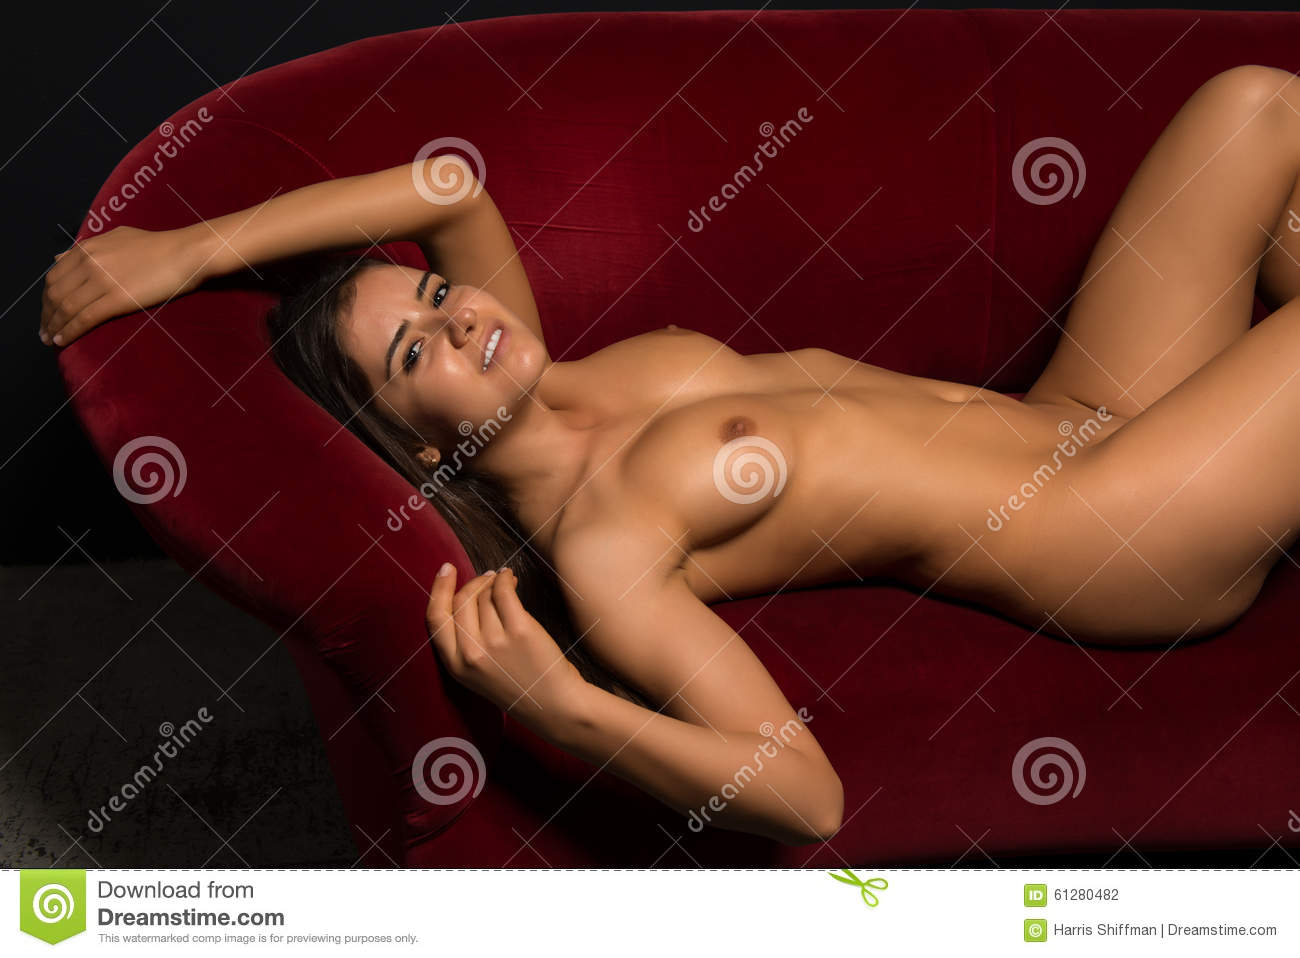 Real air force woman nude